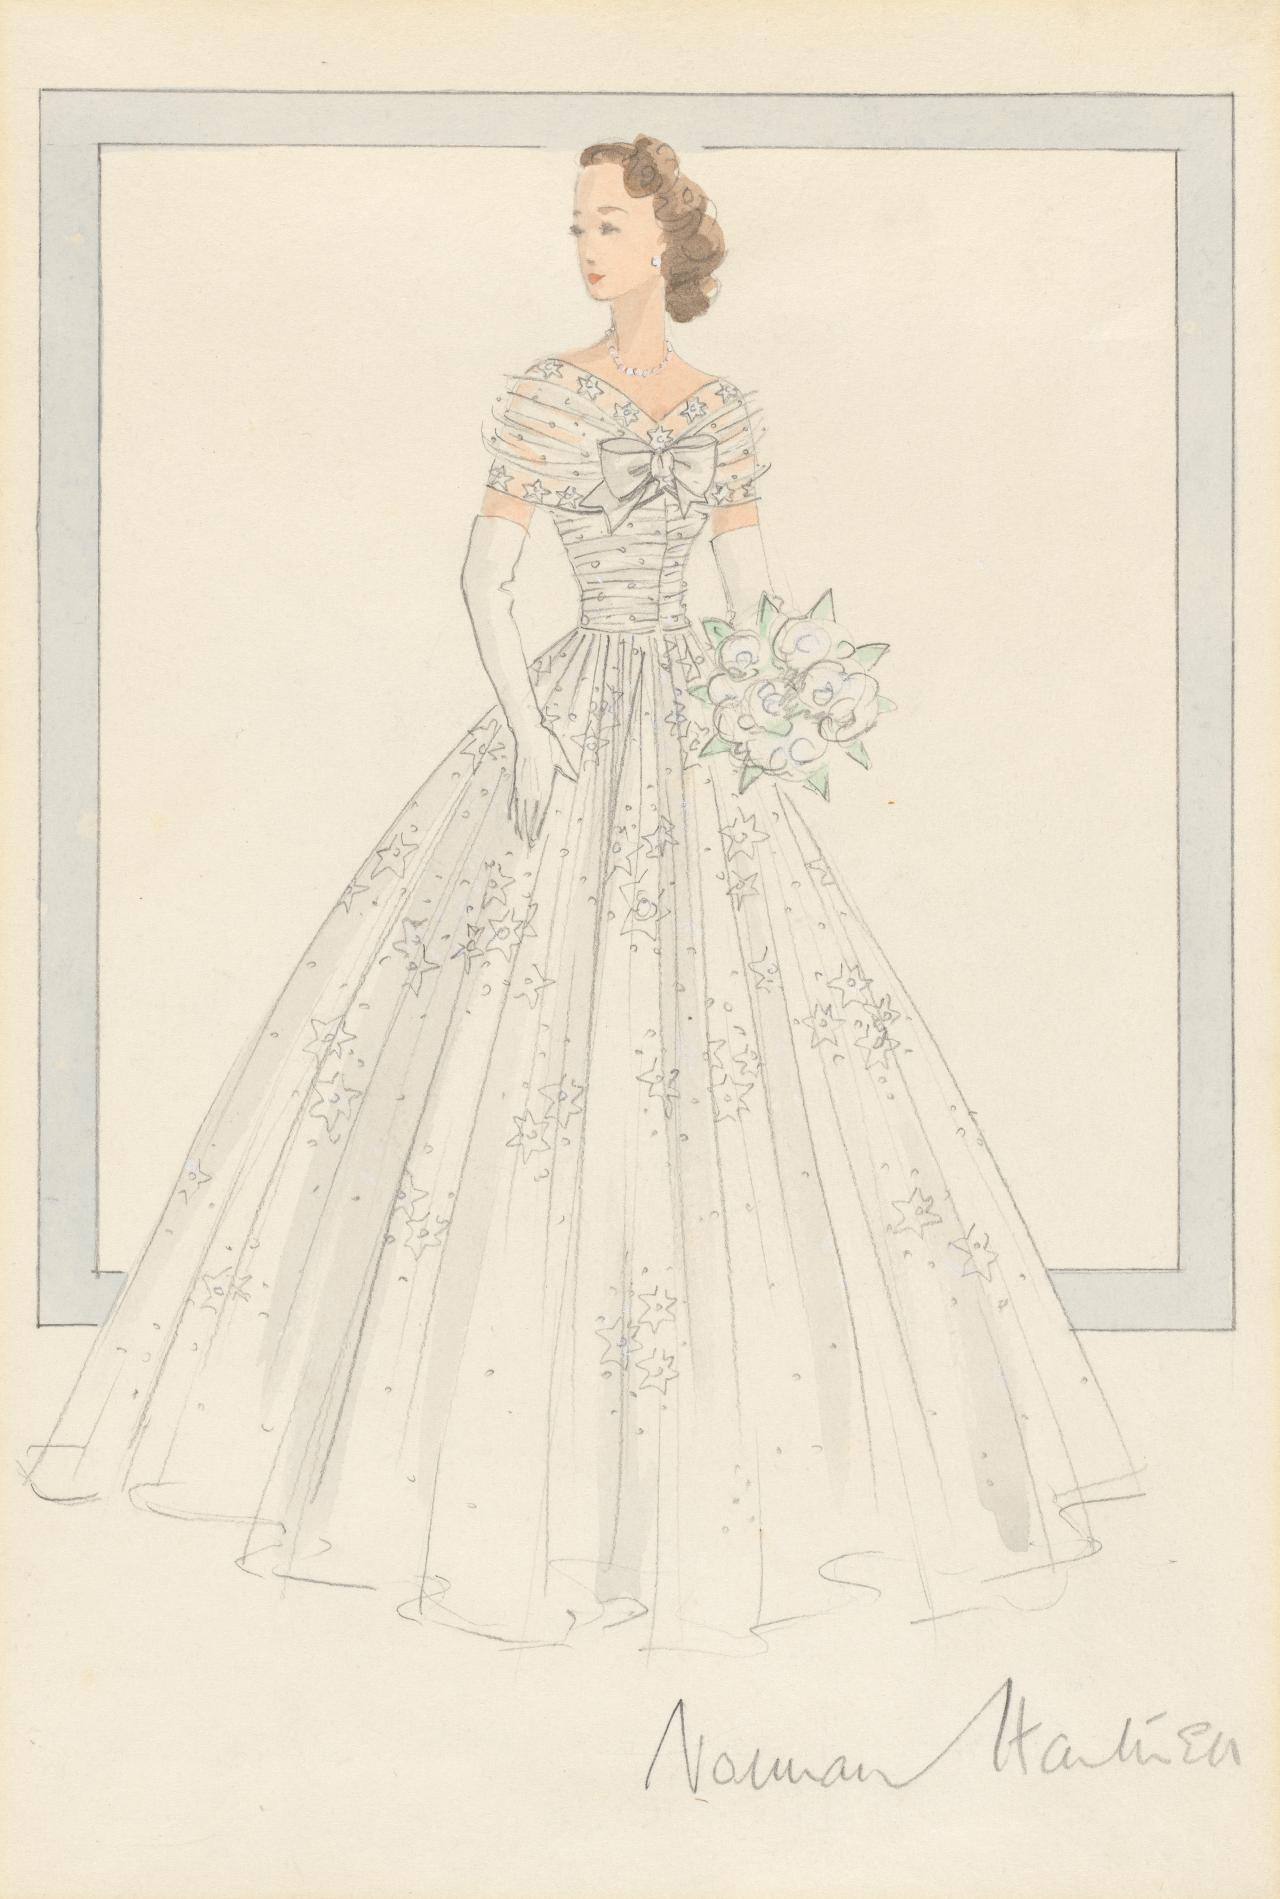 Design for the bridesmaid dress worn by Her Royal Highness the Princess Margaret for the wedding of Her Royal Highness the Princess Elizabeth